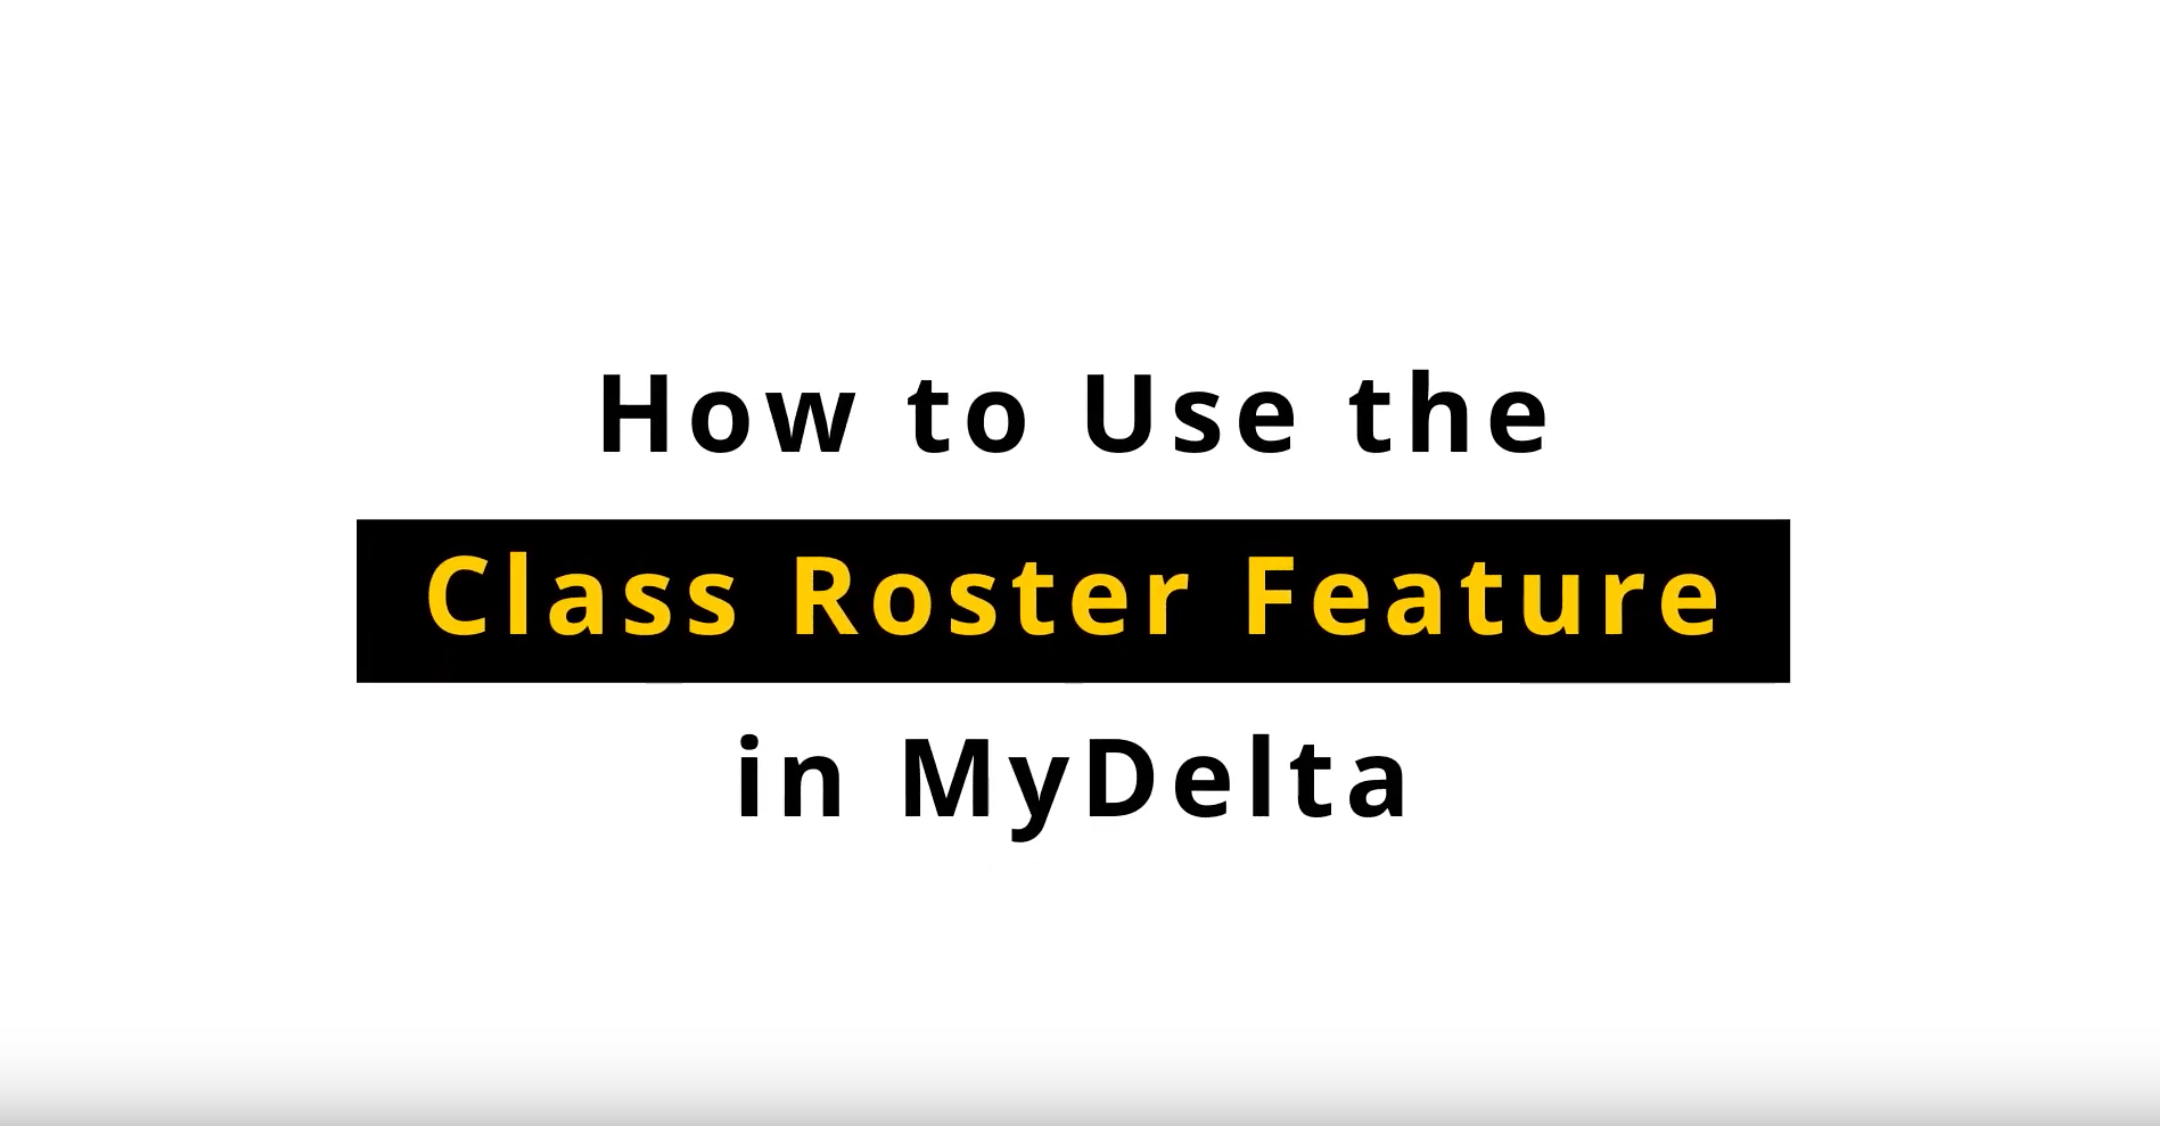 How to Use the Class Roster Feature in MyDelta